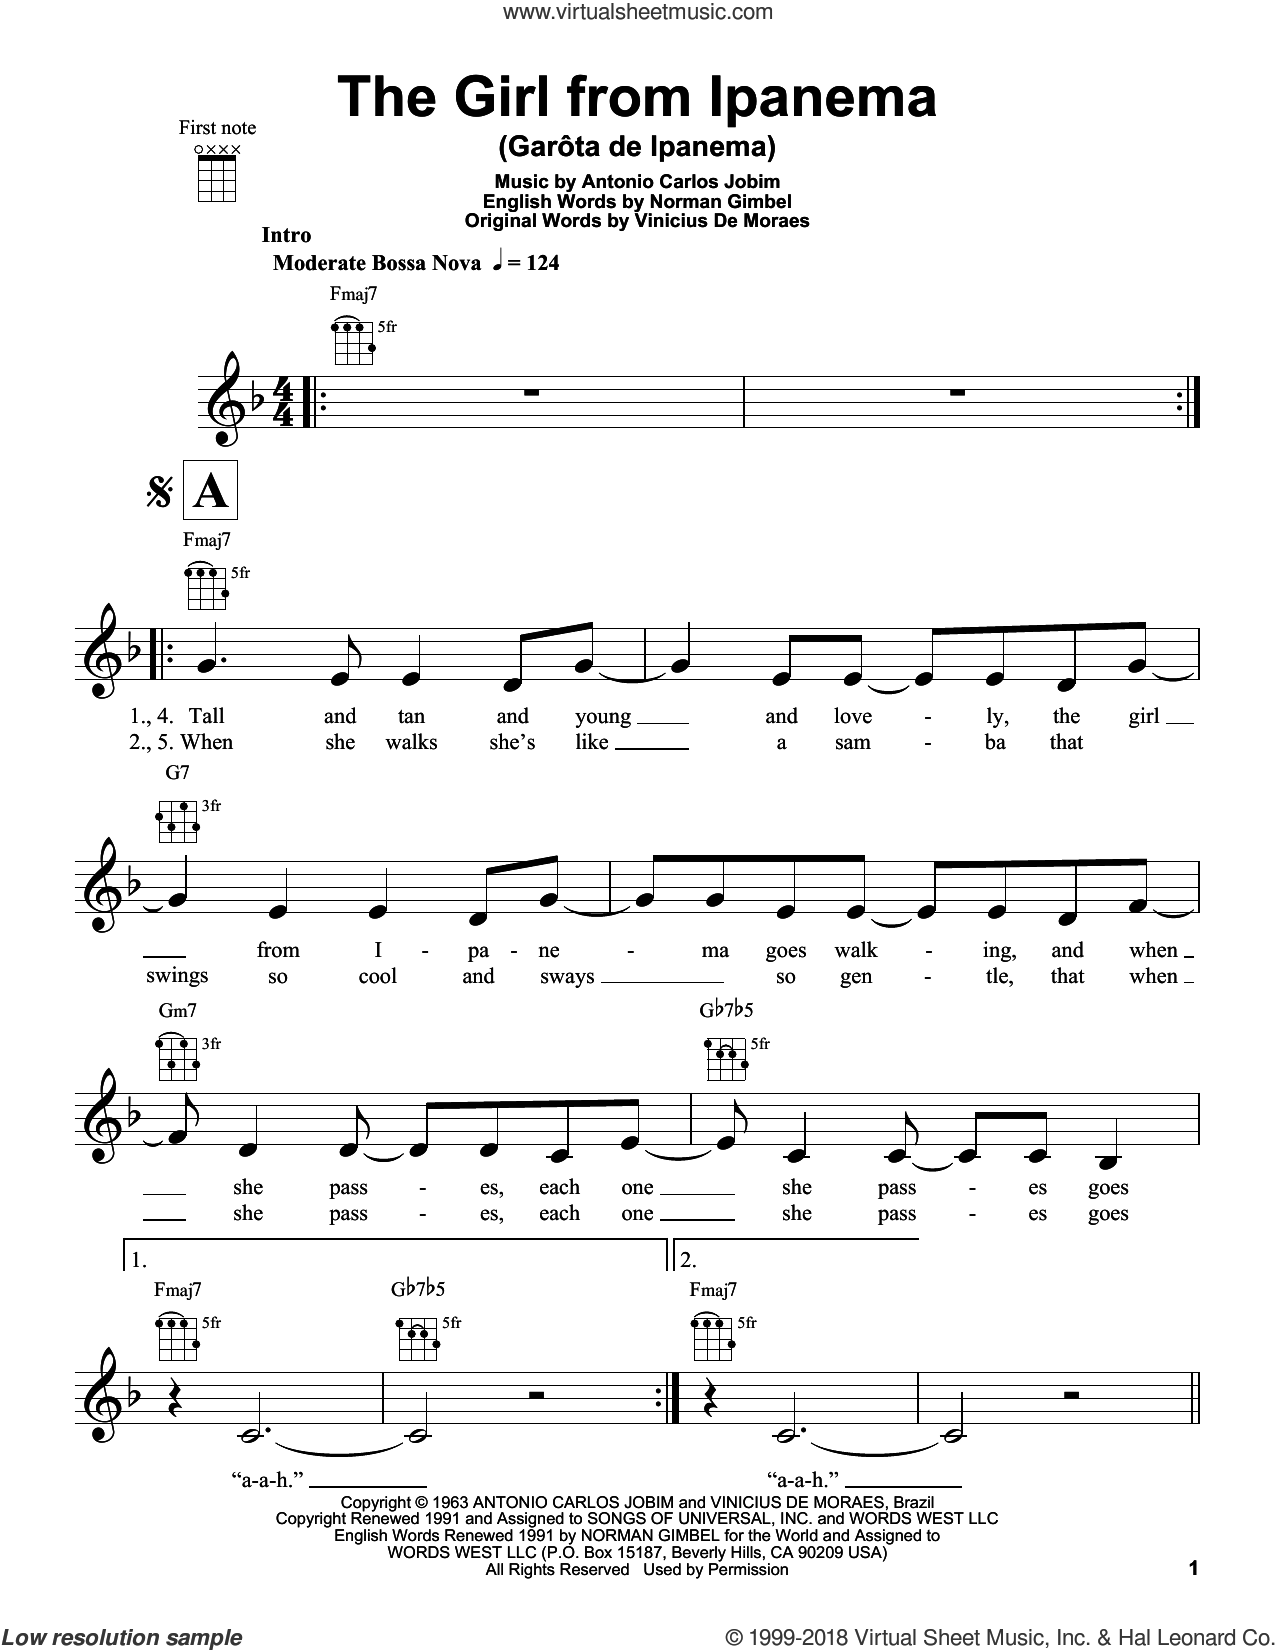 The Girl From Ipanema (Garota De Ipanema) sheet music for ukulele by Norman Gimbel, Antonio Carlos Jobim and Vinicius de Moraes. Score Image Preview.